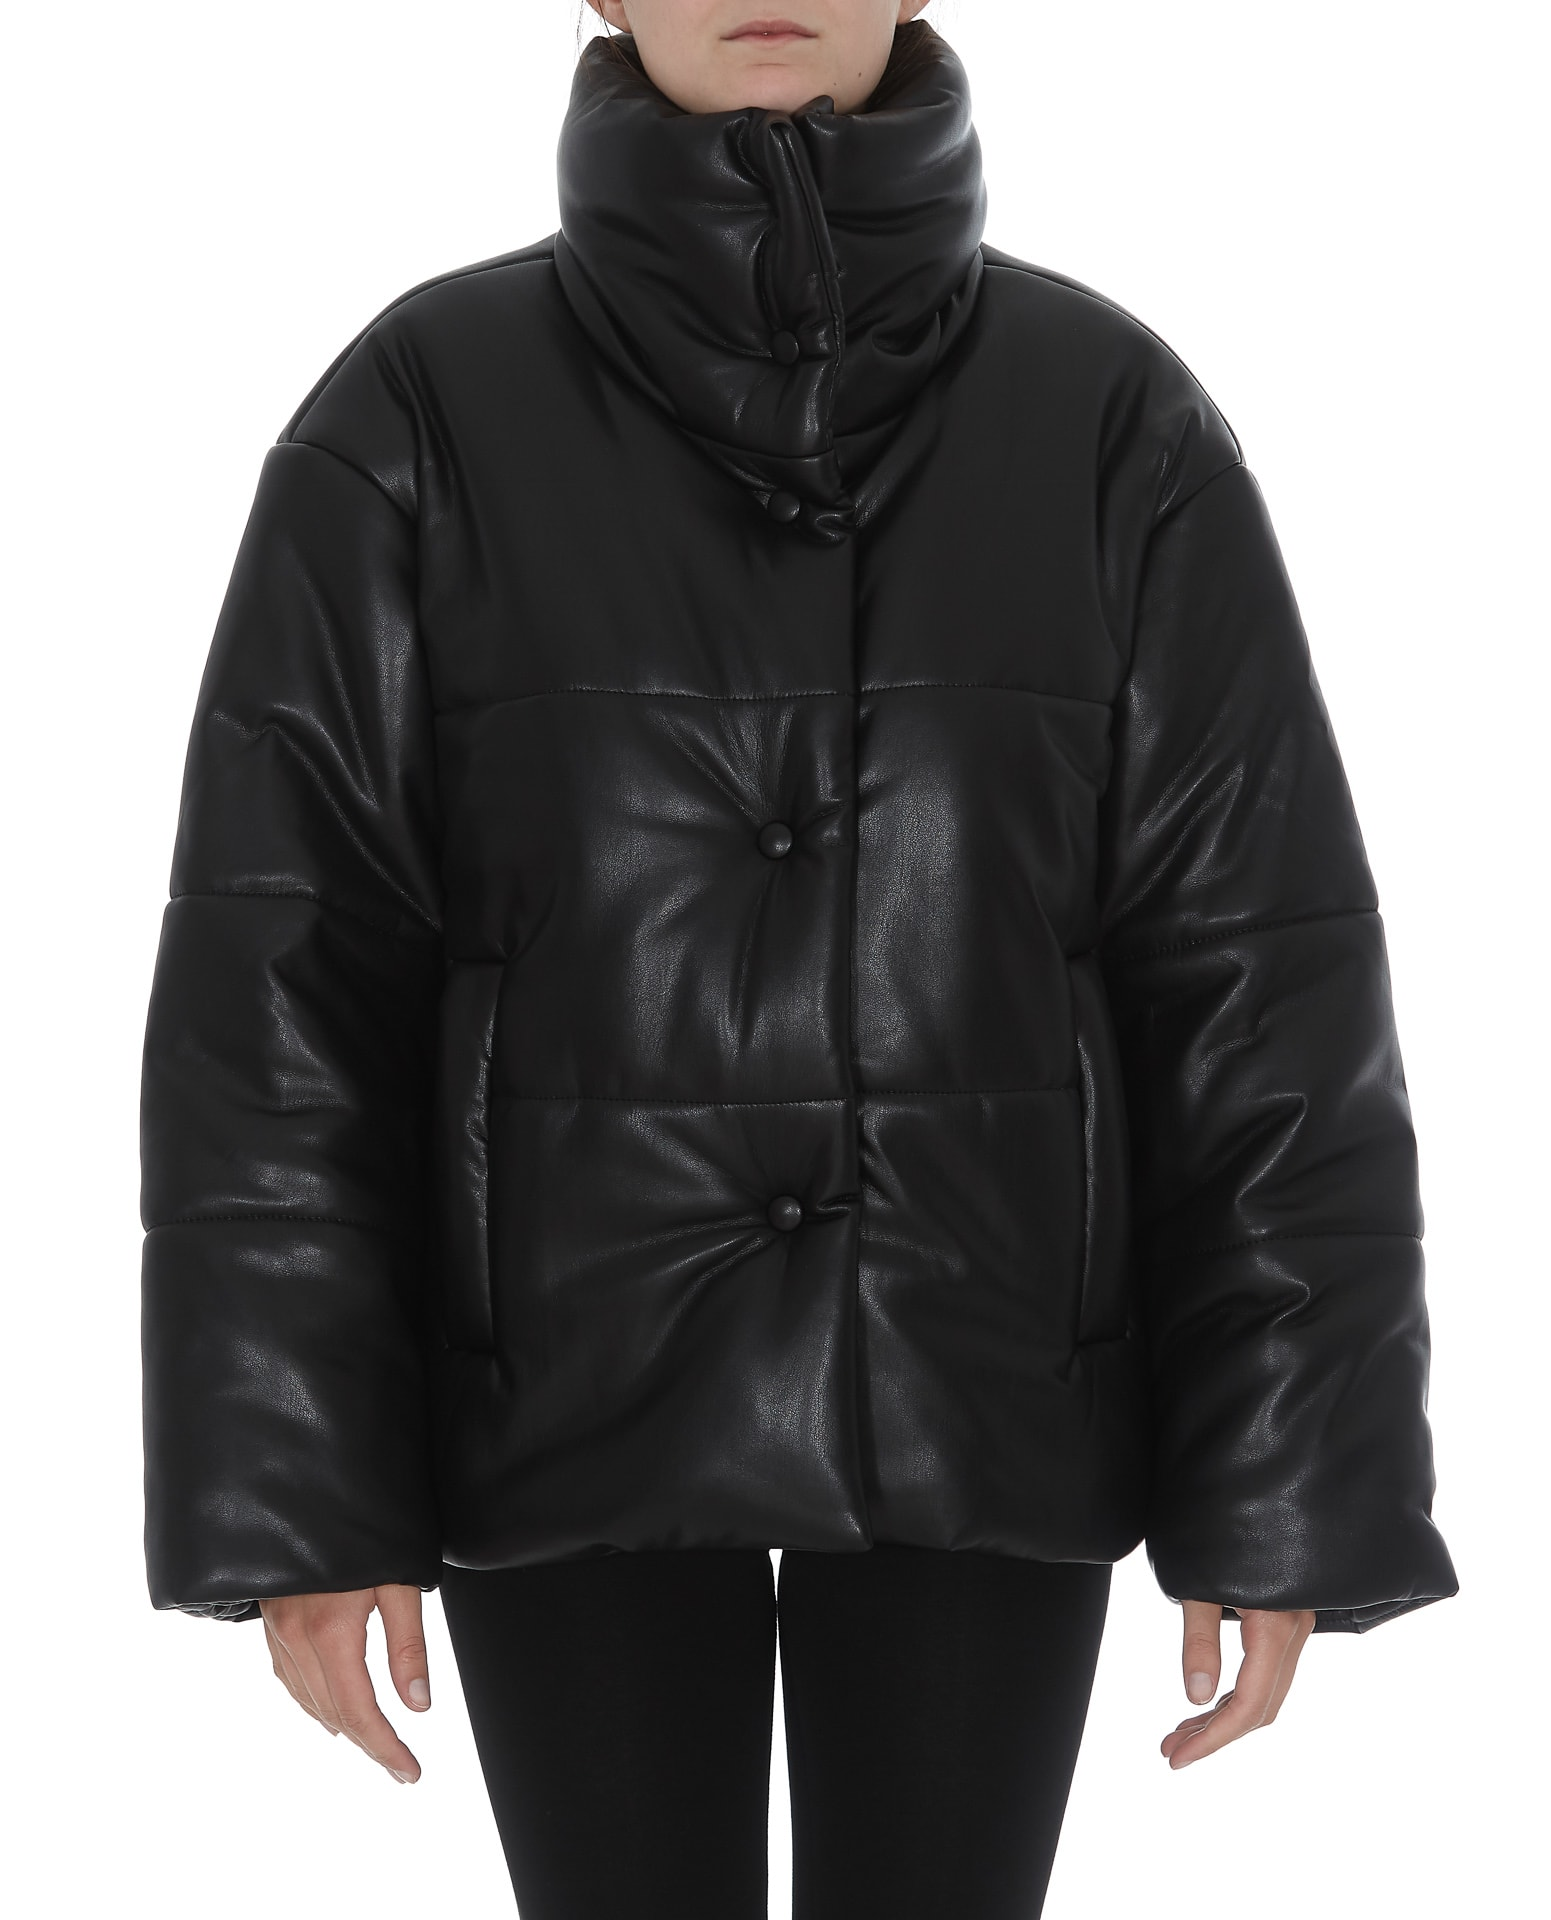 Nanushka Eco Leather Down Jacket